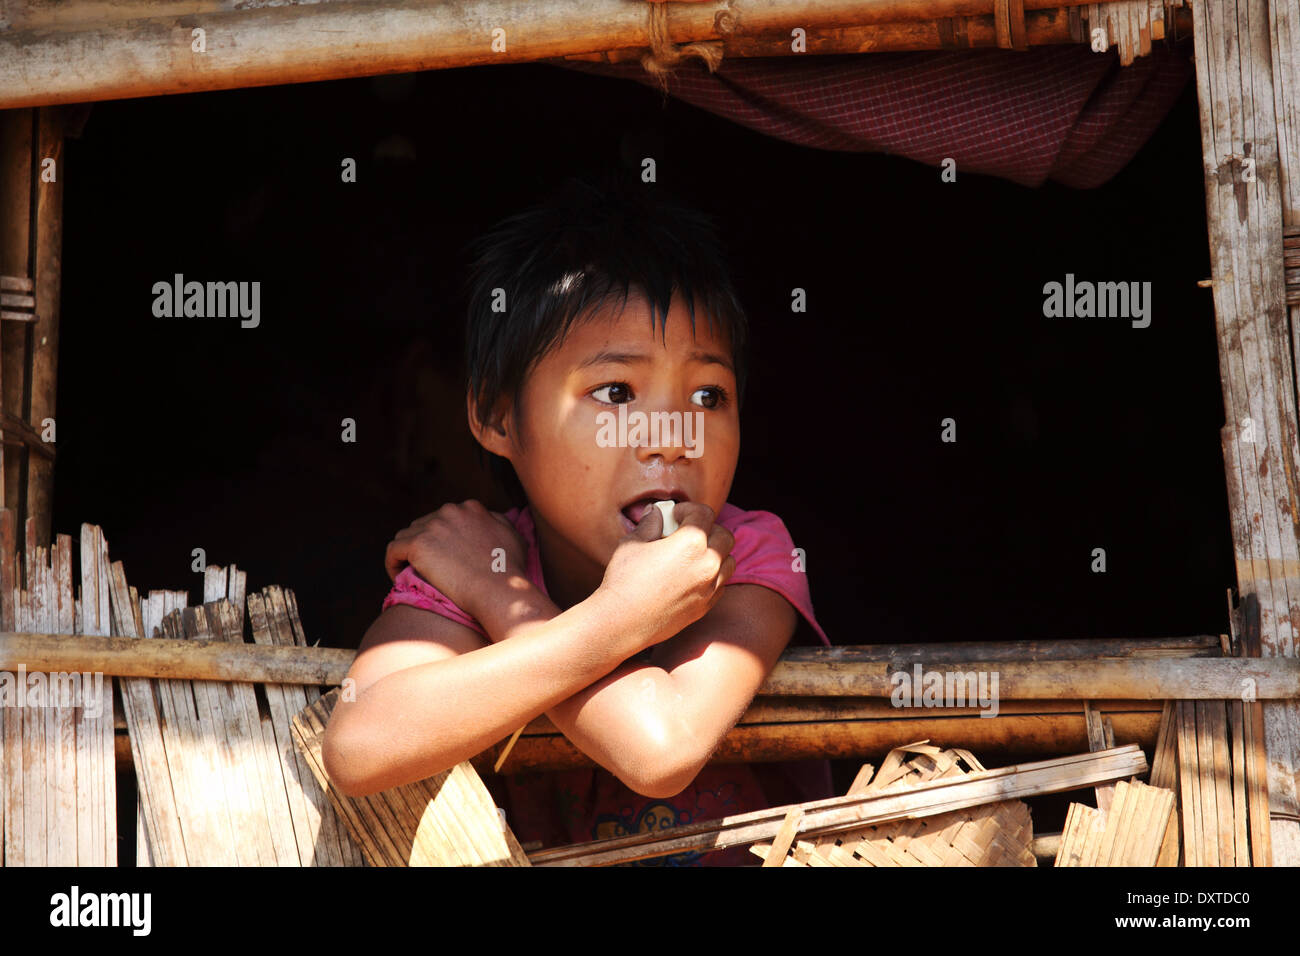 A child in a Murong tribal hut in Baganpara village in the Bandarban region of Bangladesh. - Stock Image